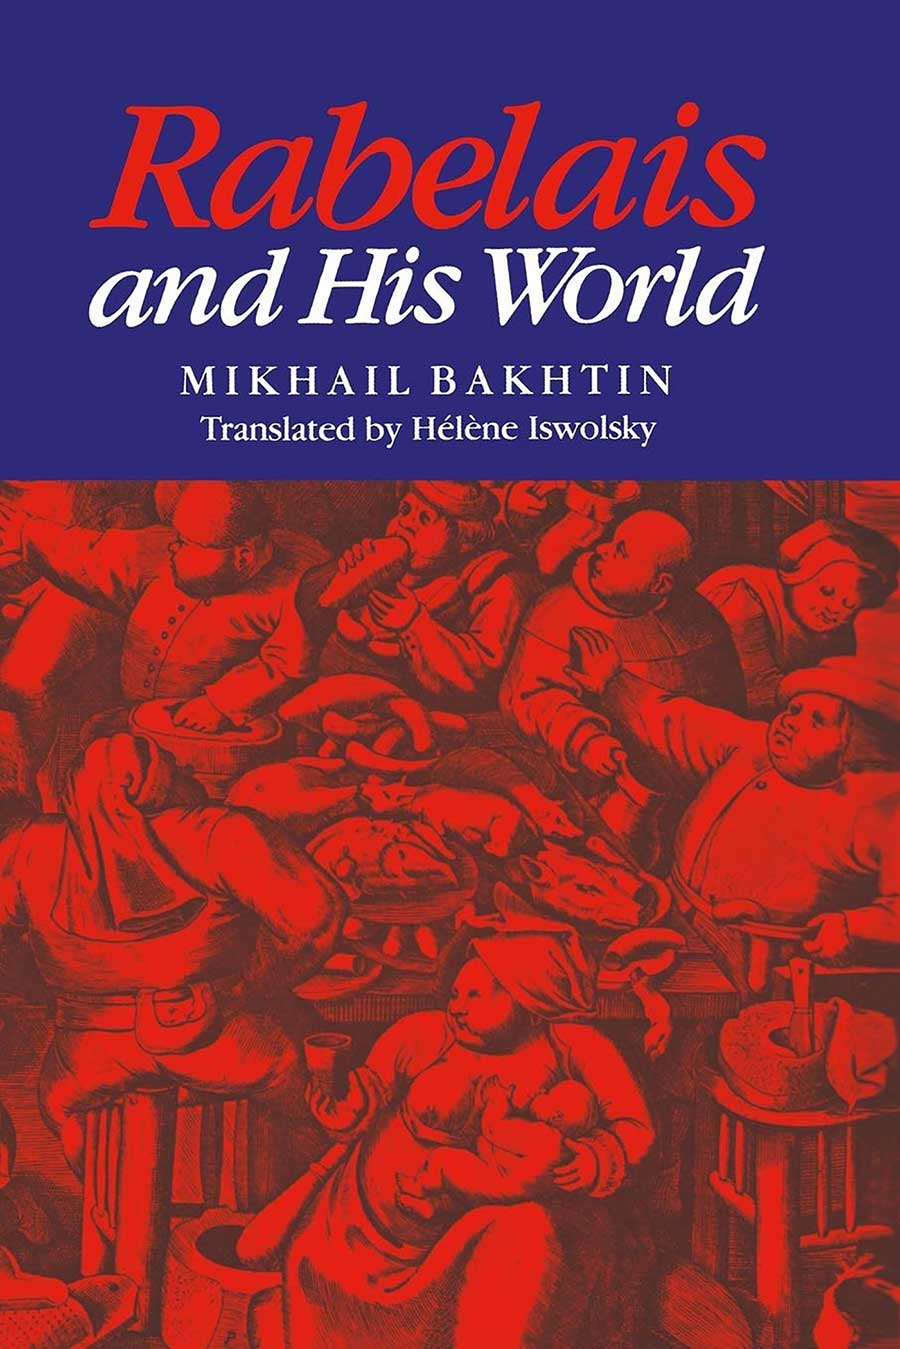 Rabelais & Hist World by Mikhail Bakhtin